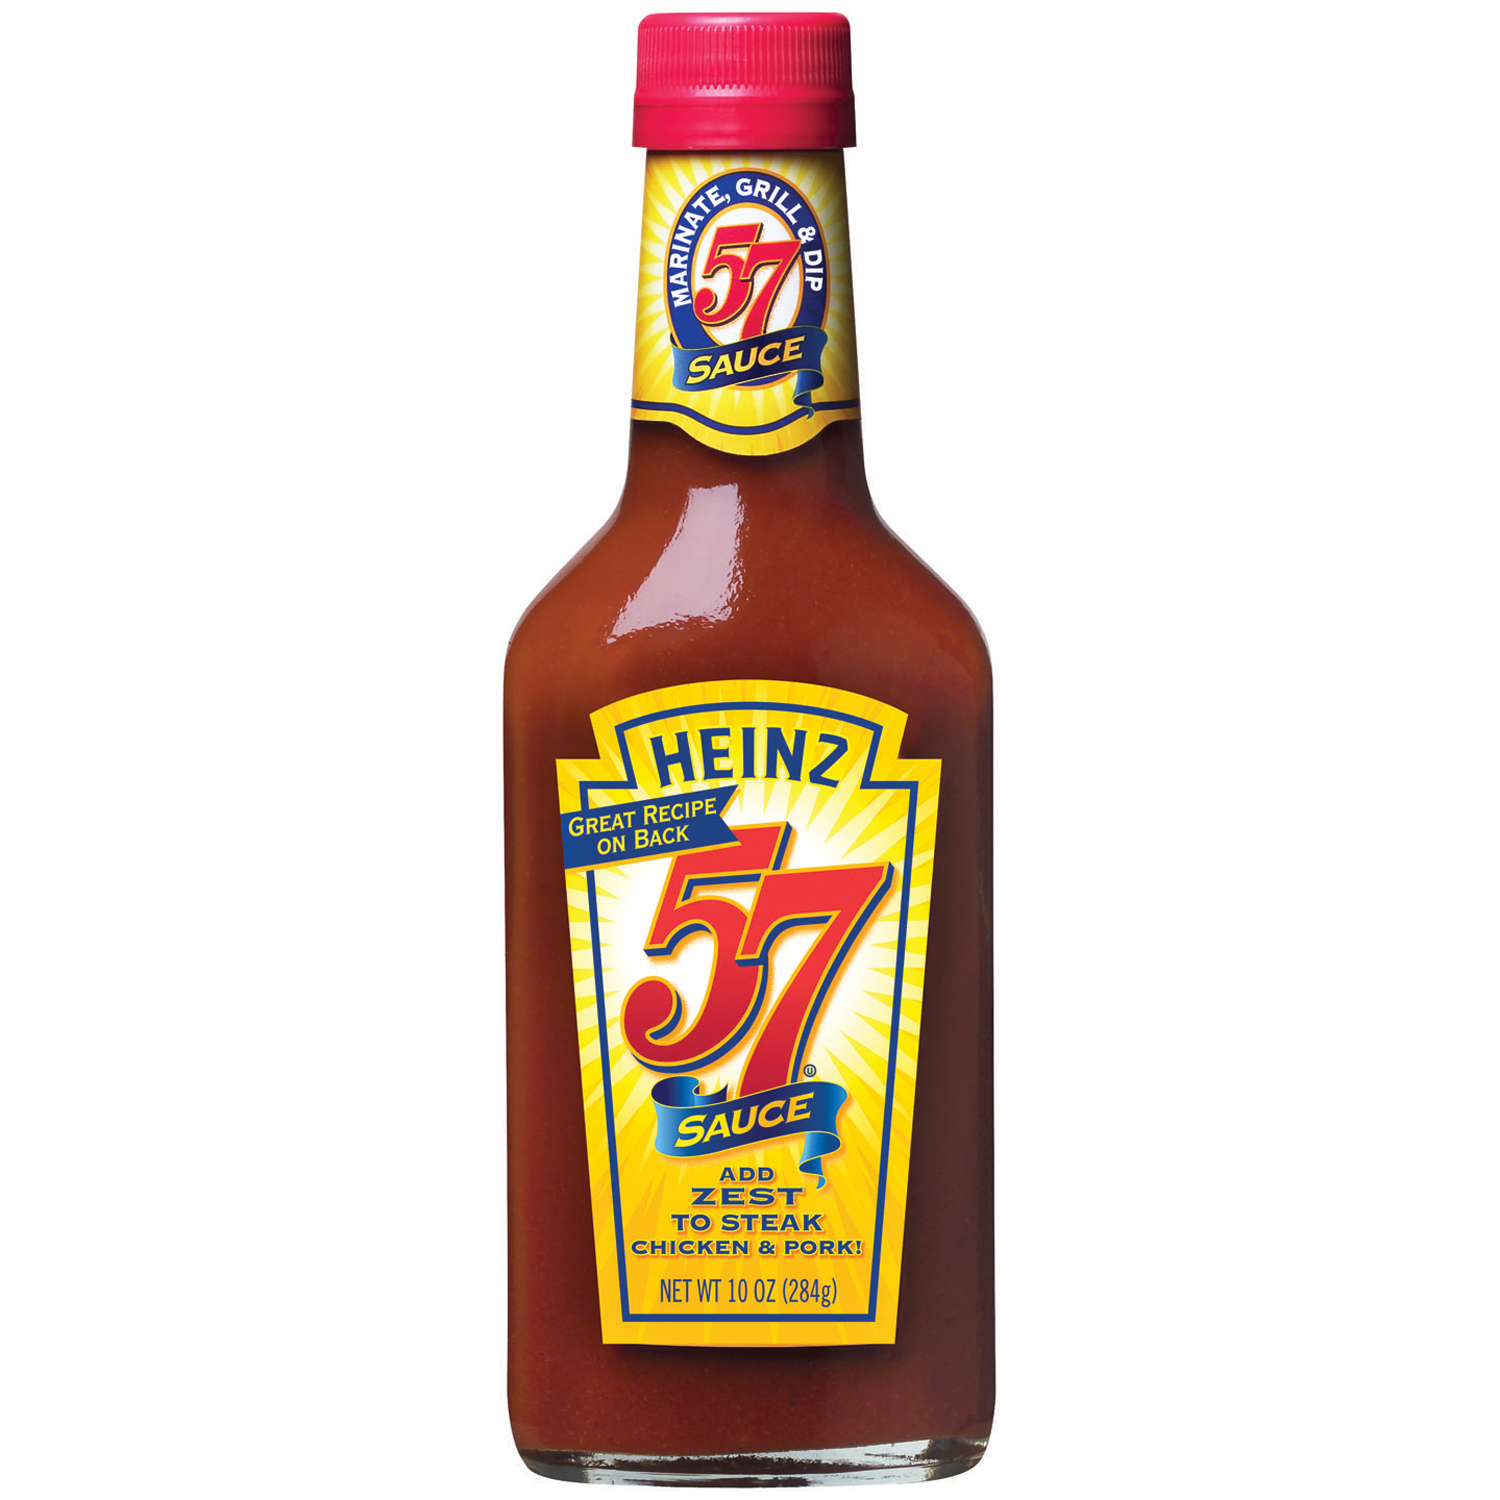 Heinz 57 Steak Sauce 10 Oz Glass Bottle image